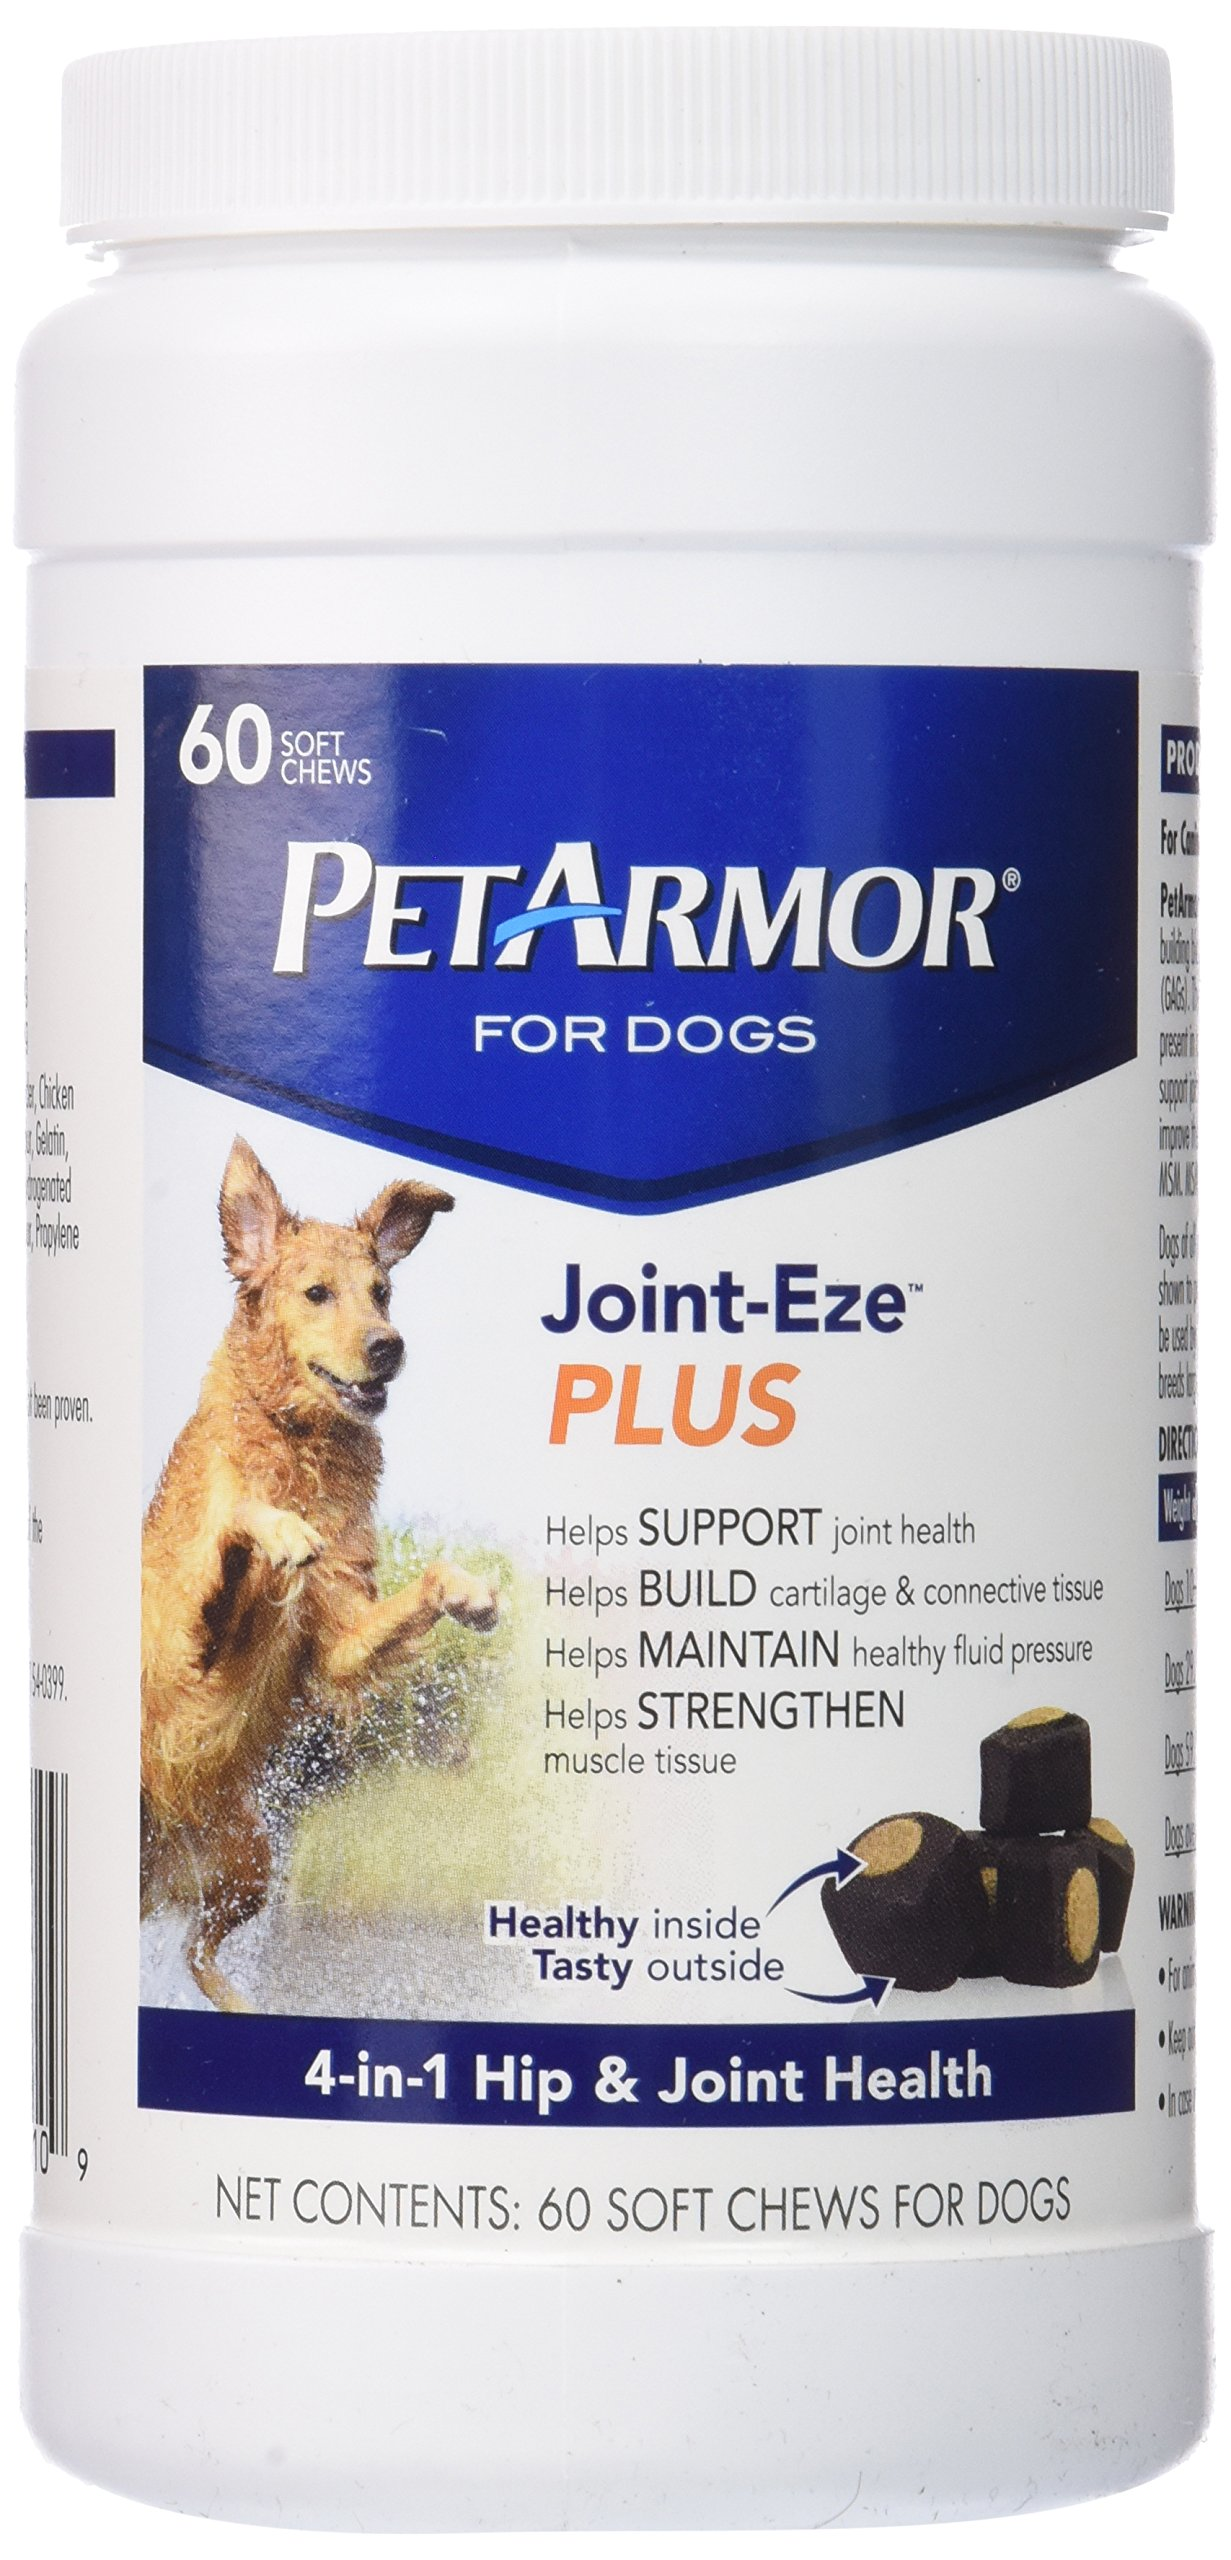 PetArmor 60 Count Joint-Eze Plus Bottle Chewable for Dogs